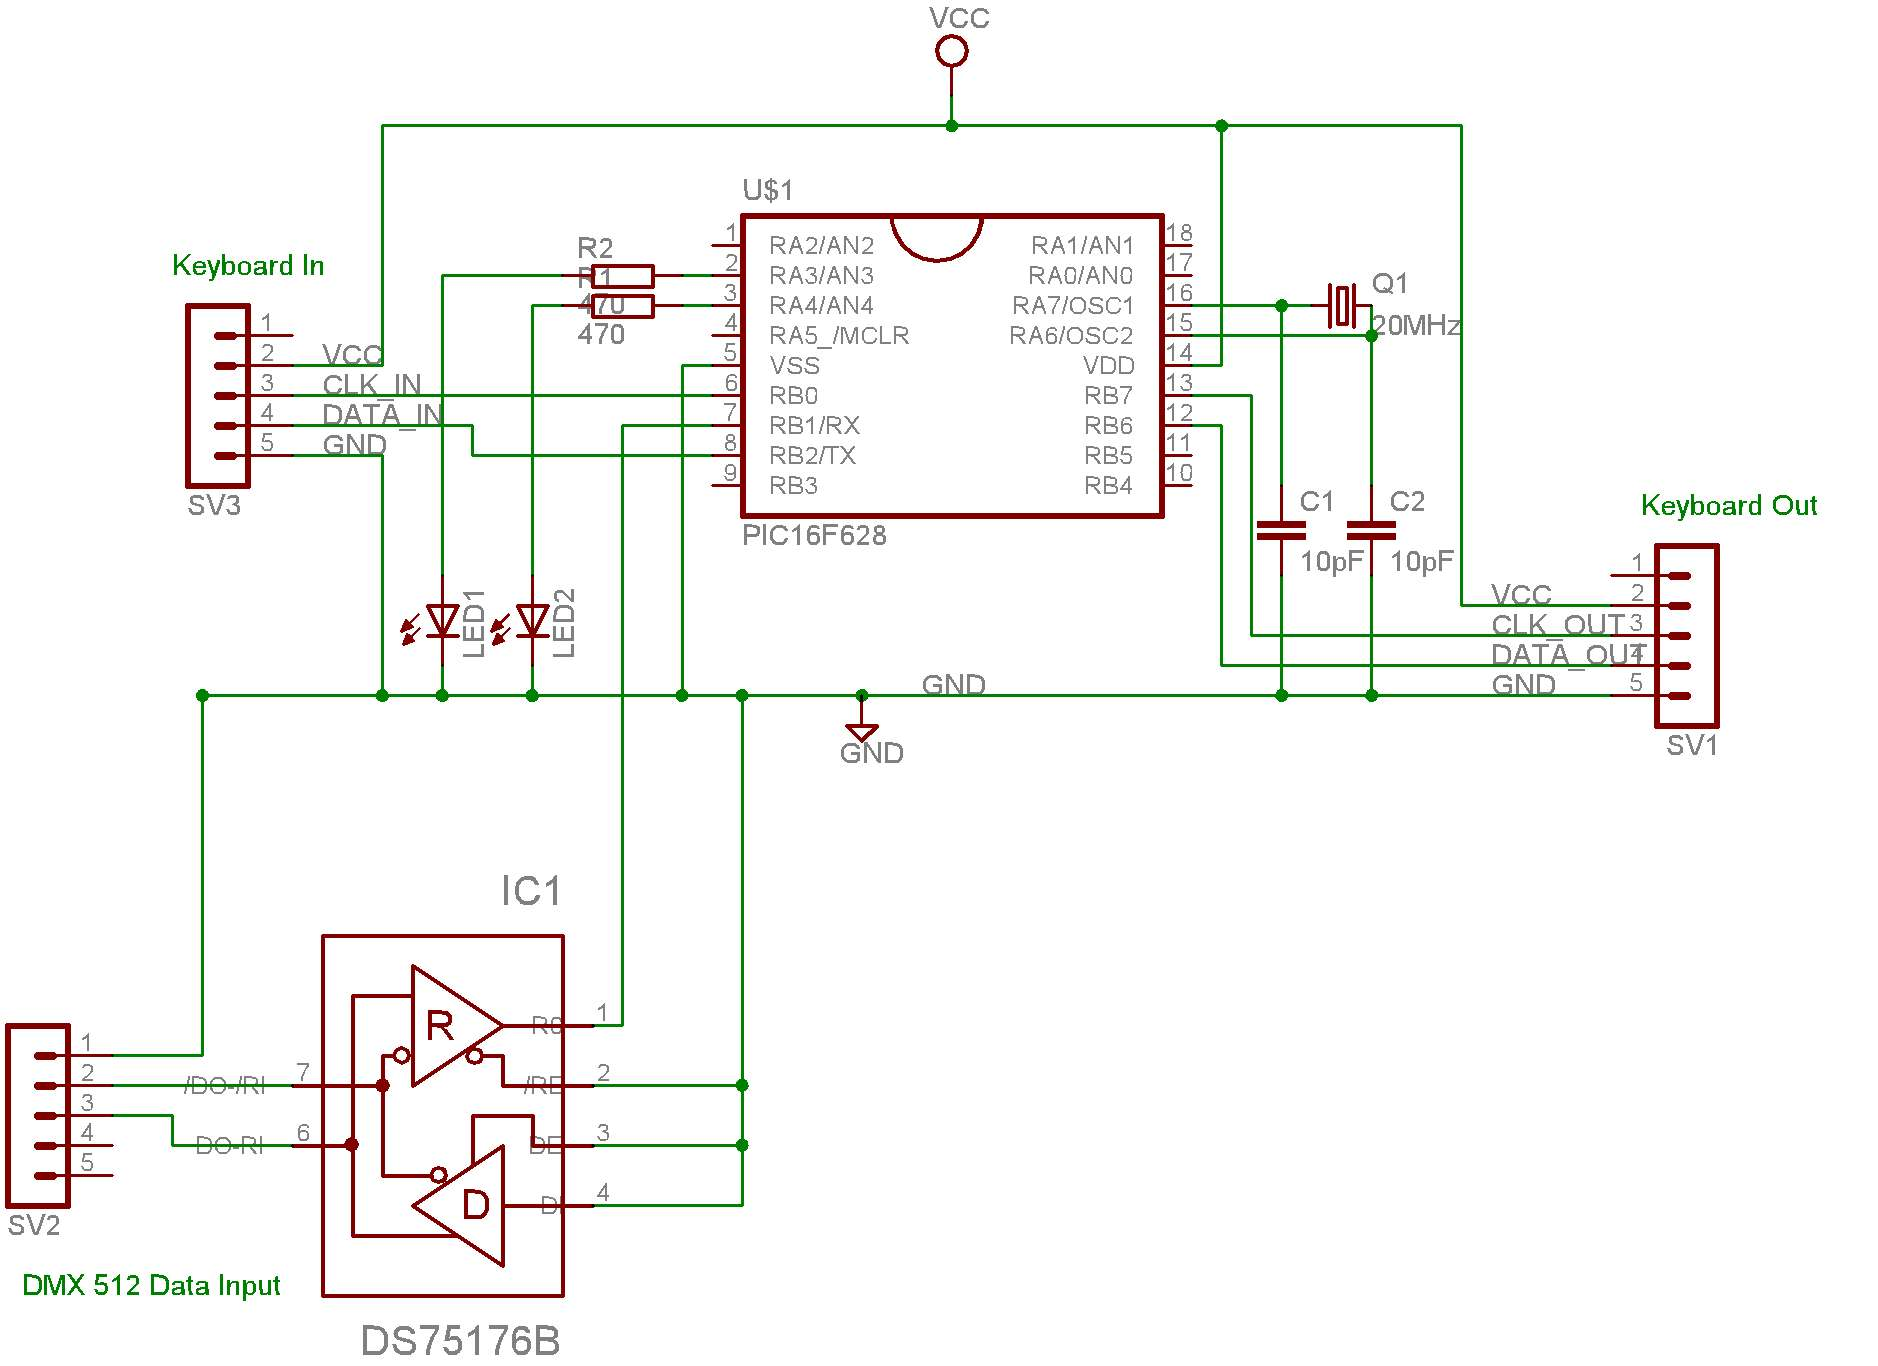 Circuit dmx pc keyboard interface Belden 9727 Wiring-Diagram DMX at readyjetset.co